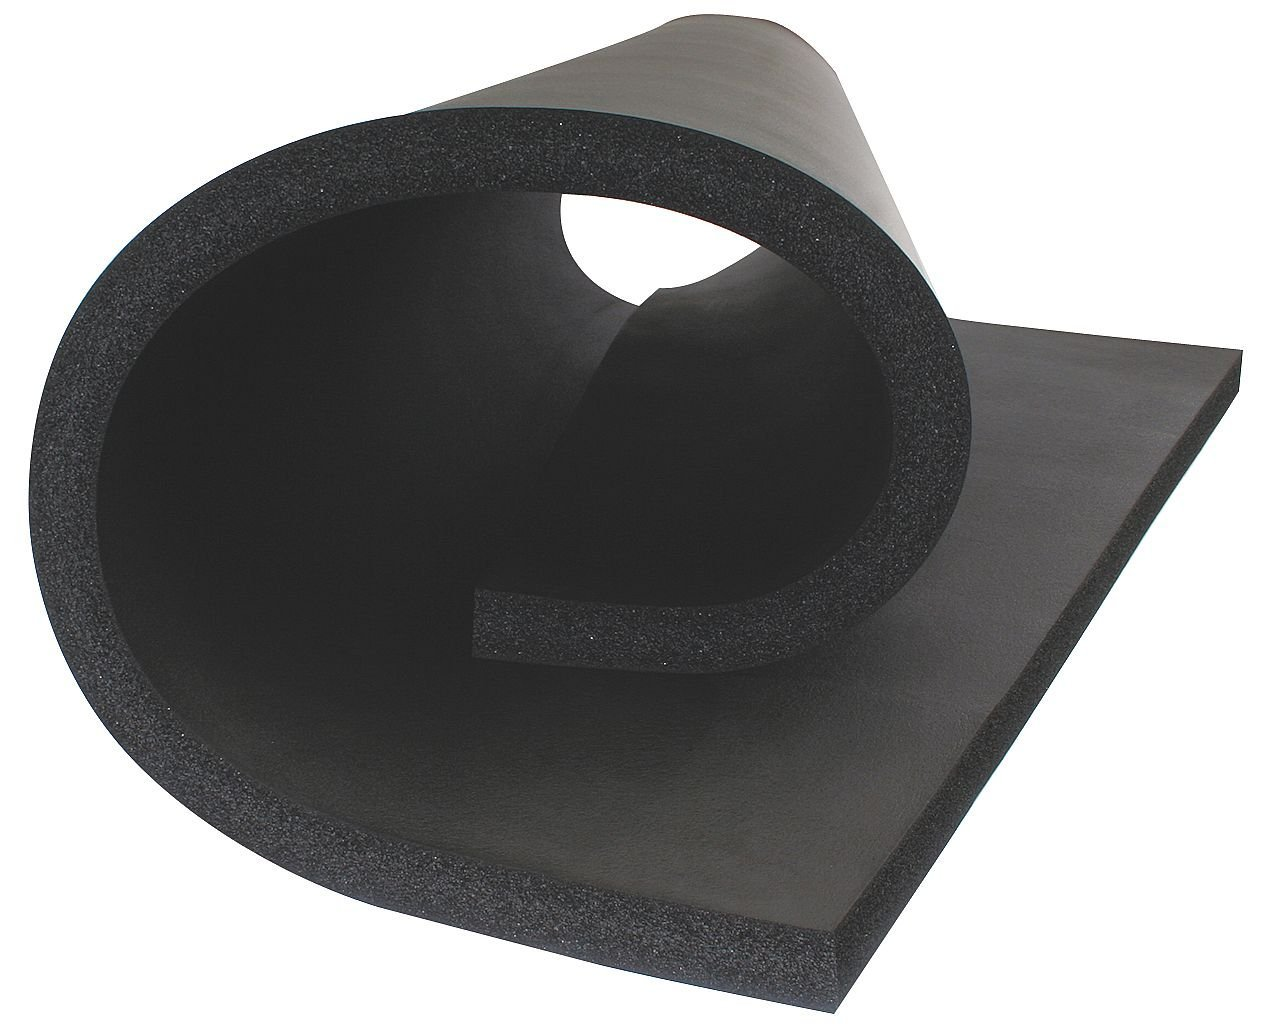 Insulation Materials: Flexible Closed Cell Insulation